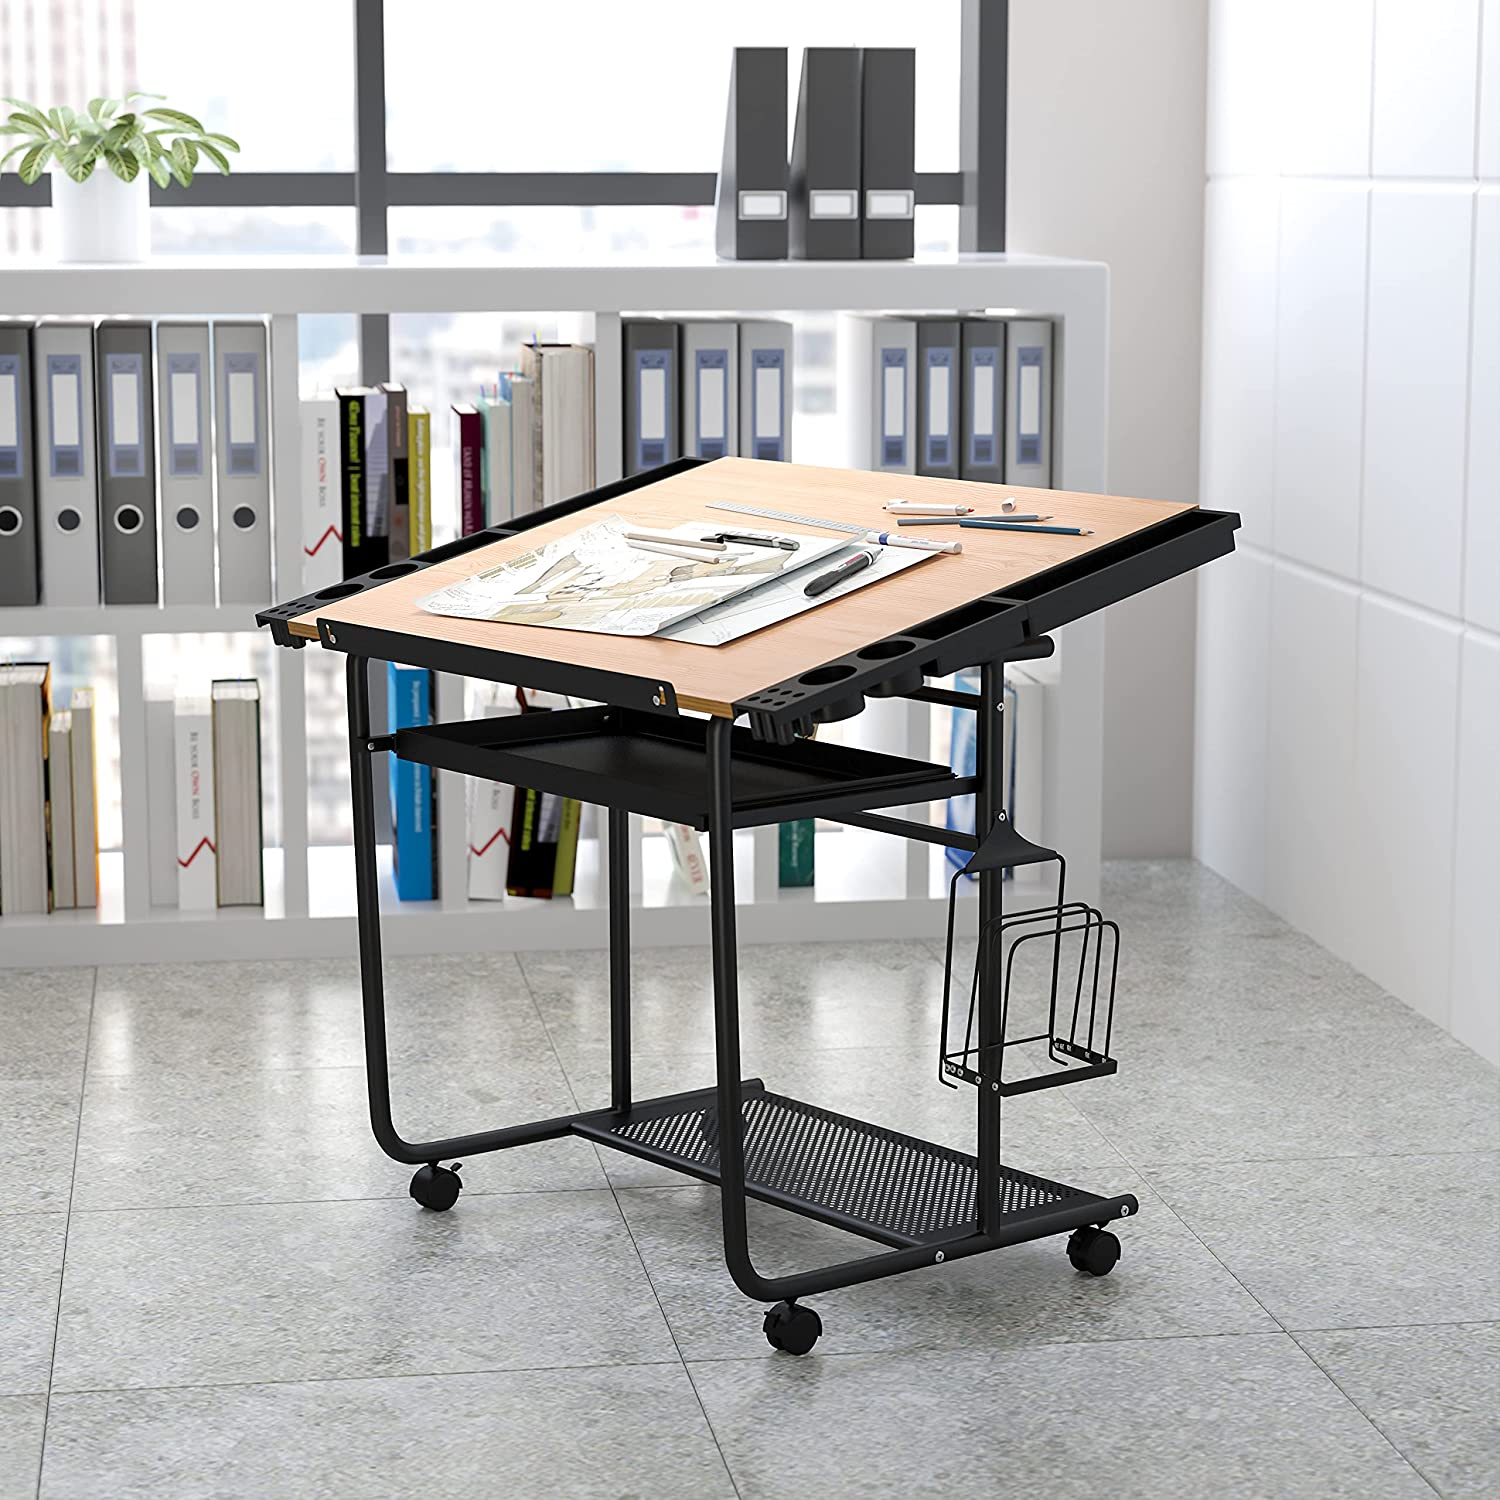 Flash Furniture Adjustable Drawing and Drafting Super popular specialty store Table Black Cheap bargain with